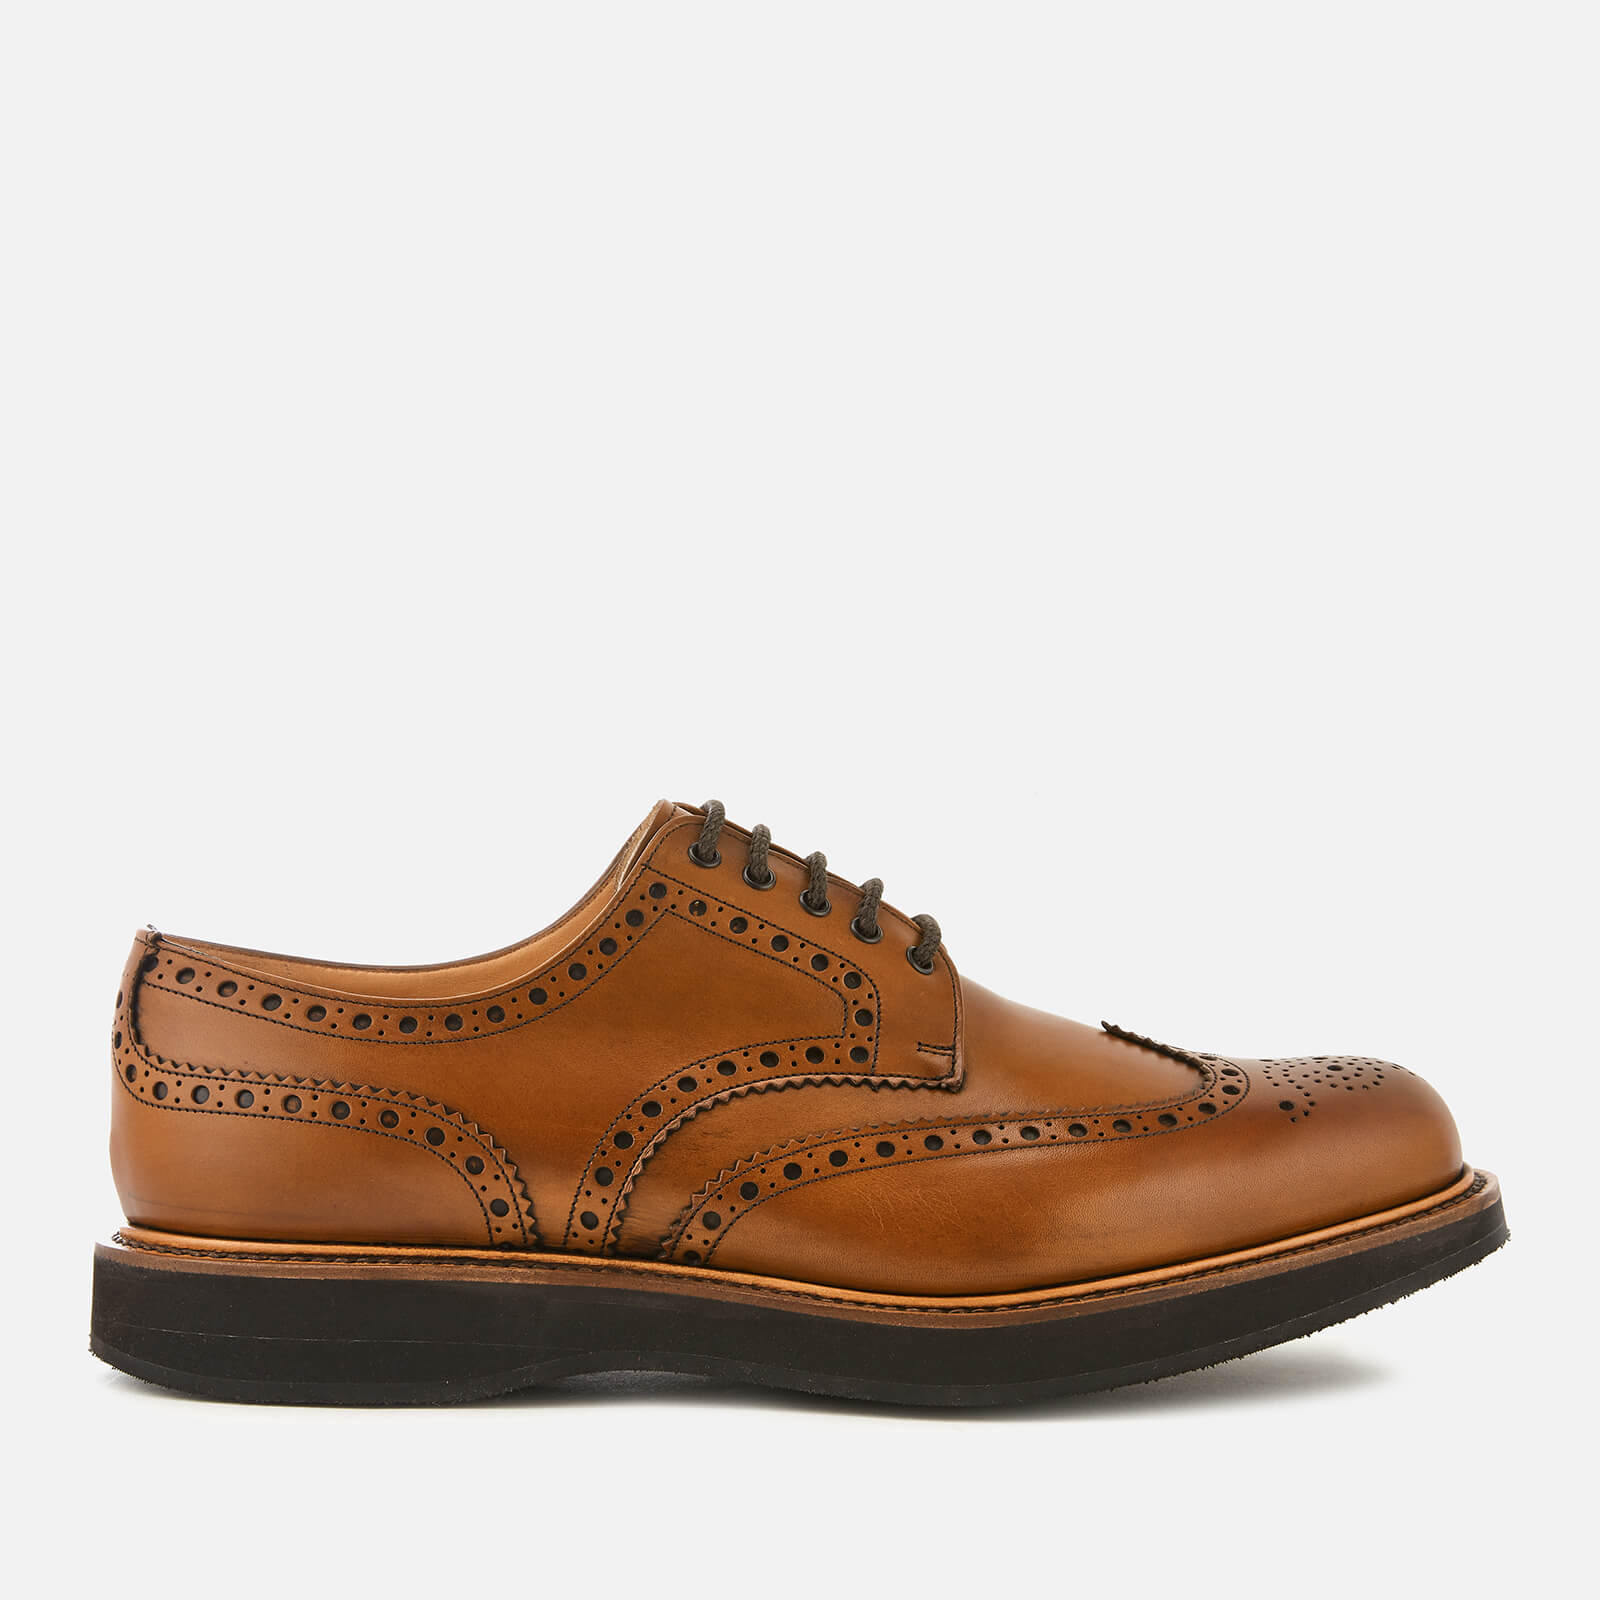 Chestnut Free Leather Tewin Men's Uk Delivery Church's Brogues UGLqSzMVp